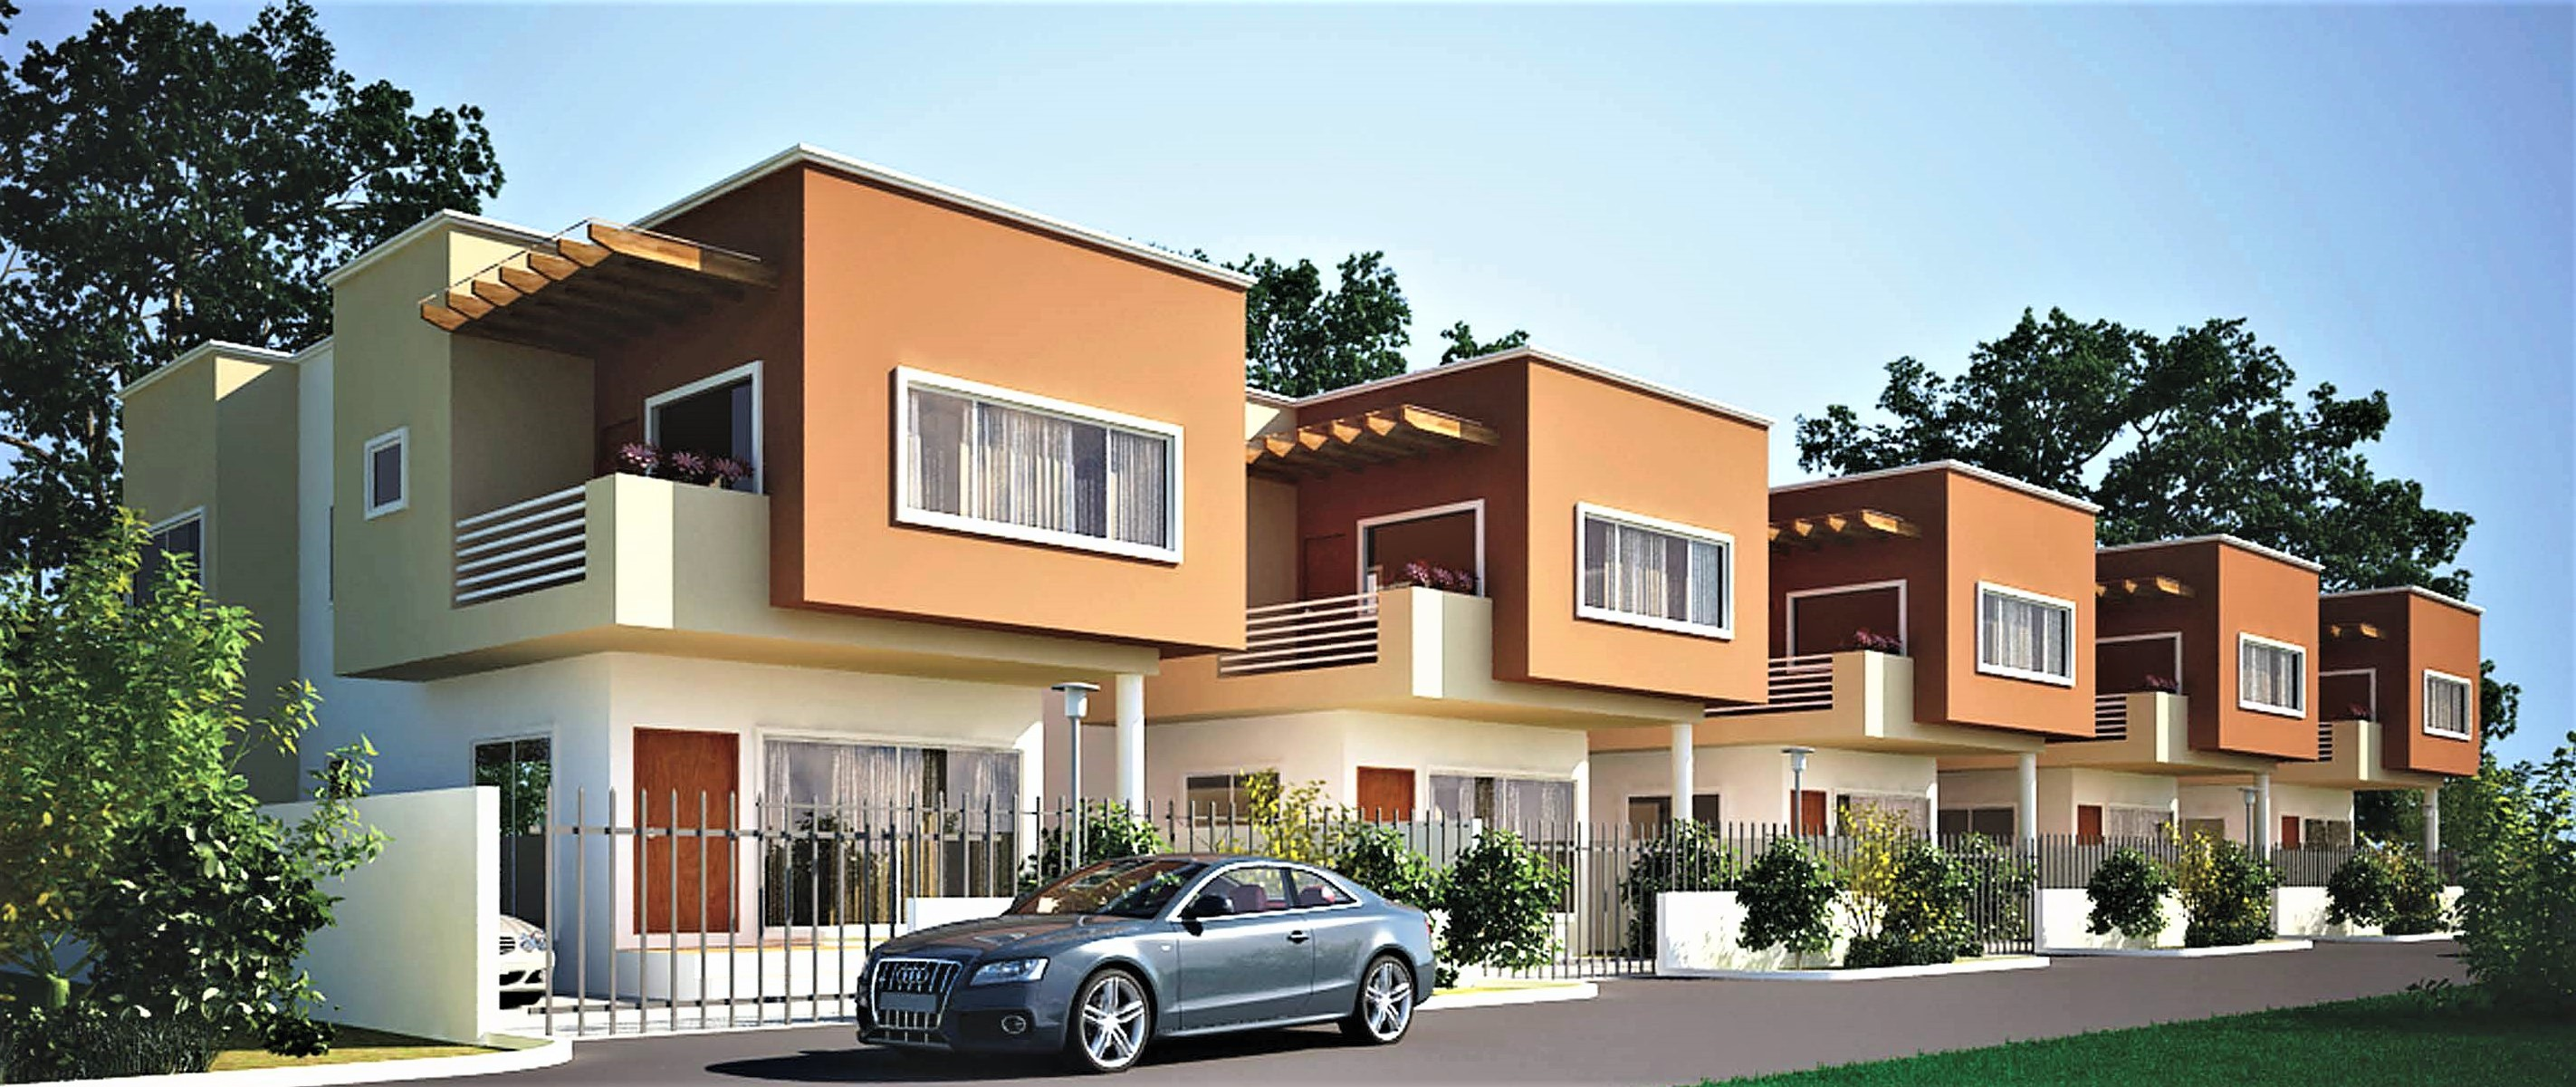 Premier homes 3 bedrooms townhouse abelemkpe for 3 bedroom townhouse